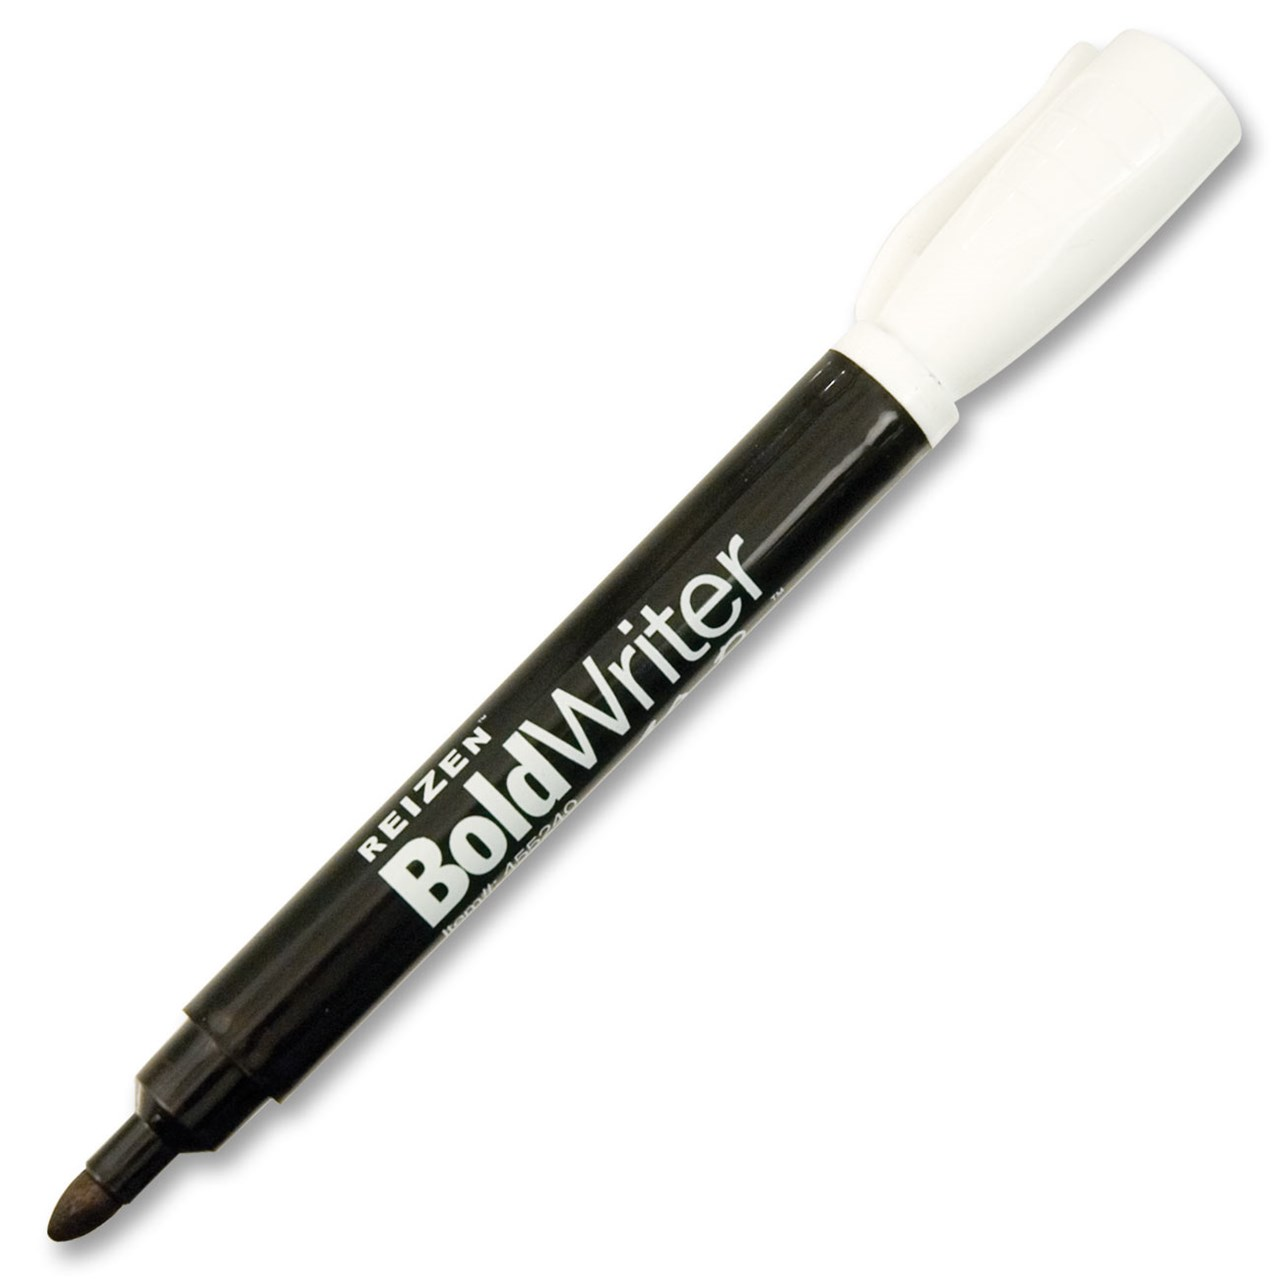 BoldWriter 40 Pen- Easy-To-See Ultra-Bold Point- Black